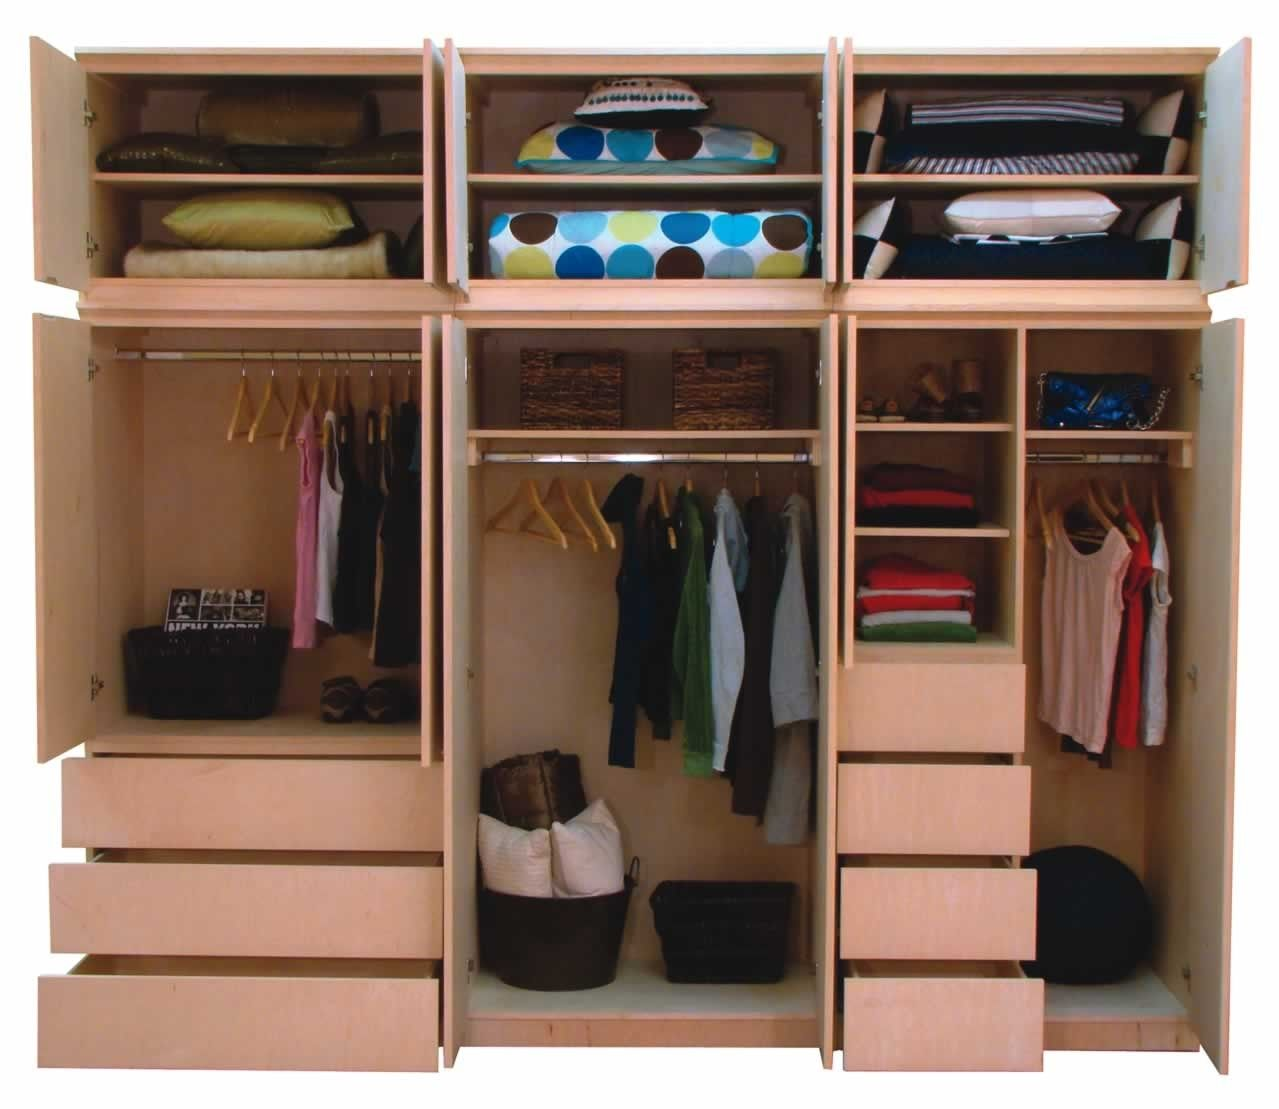 Ikea Closet Design Ideas find this pin and more on organization Closet Ideas For Small Bedrooms Offering Effectiveness In Style Creative Small Bedrooms Cupboard Design With Brown Shelving Unit Finished W